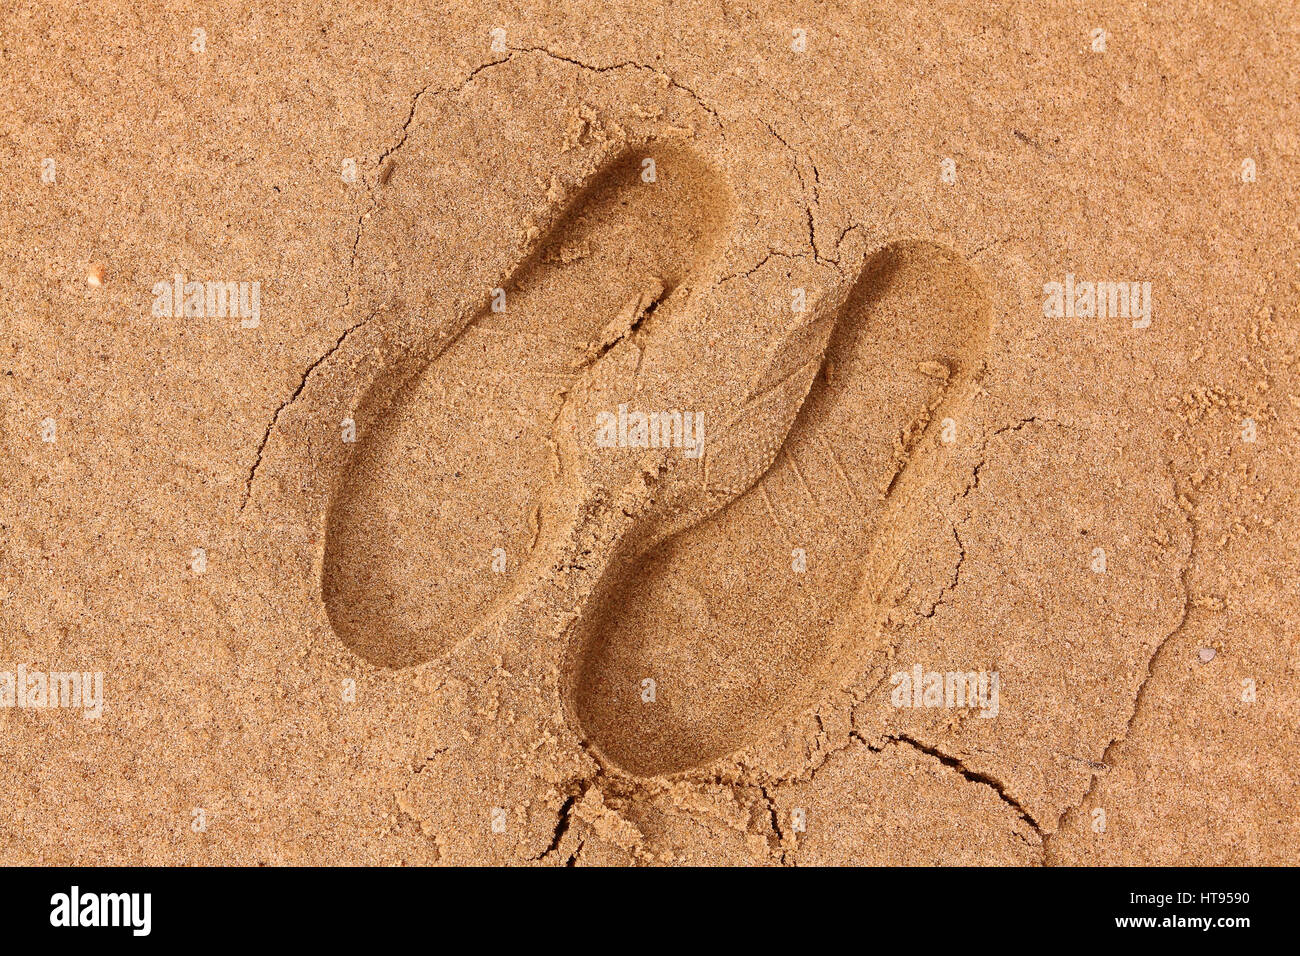 Footprint, sole of a shoe on the sand - Stock Image